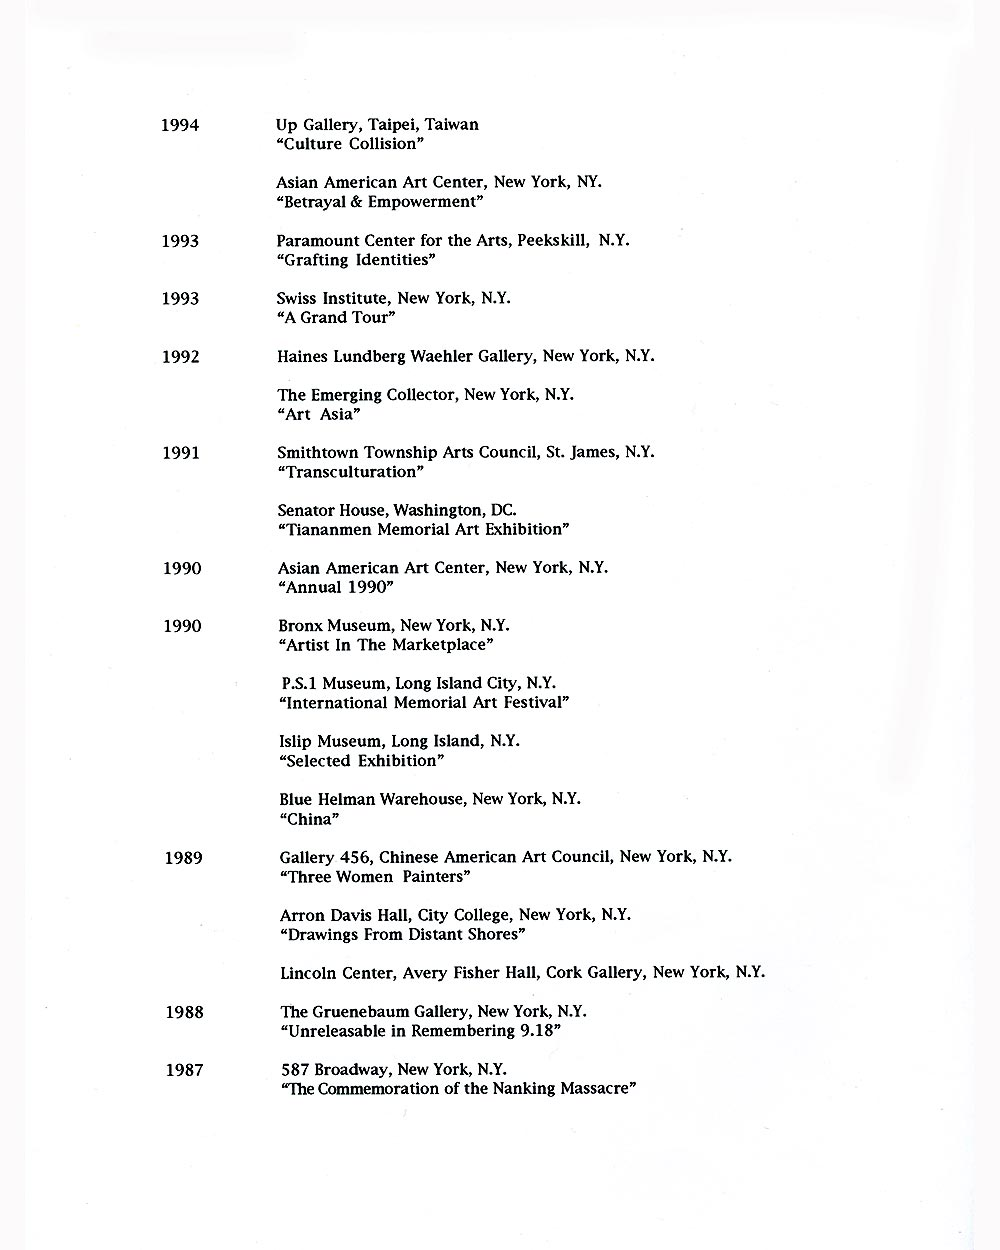 Sui Ying Hung's Resume, pg 2